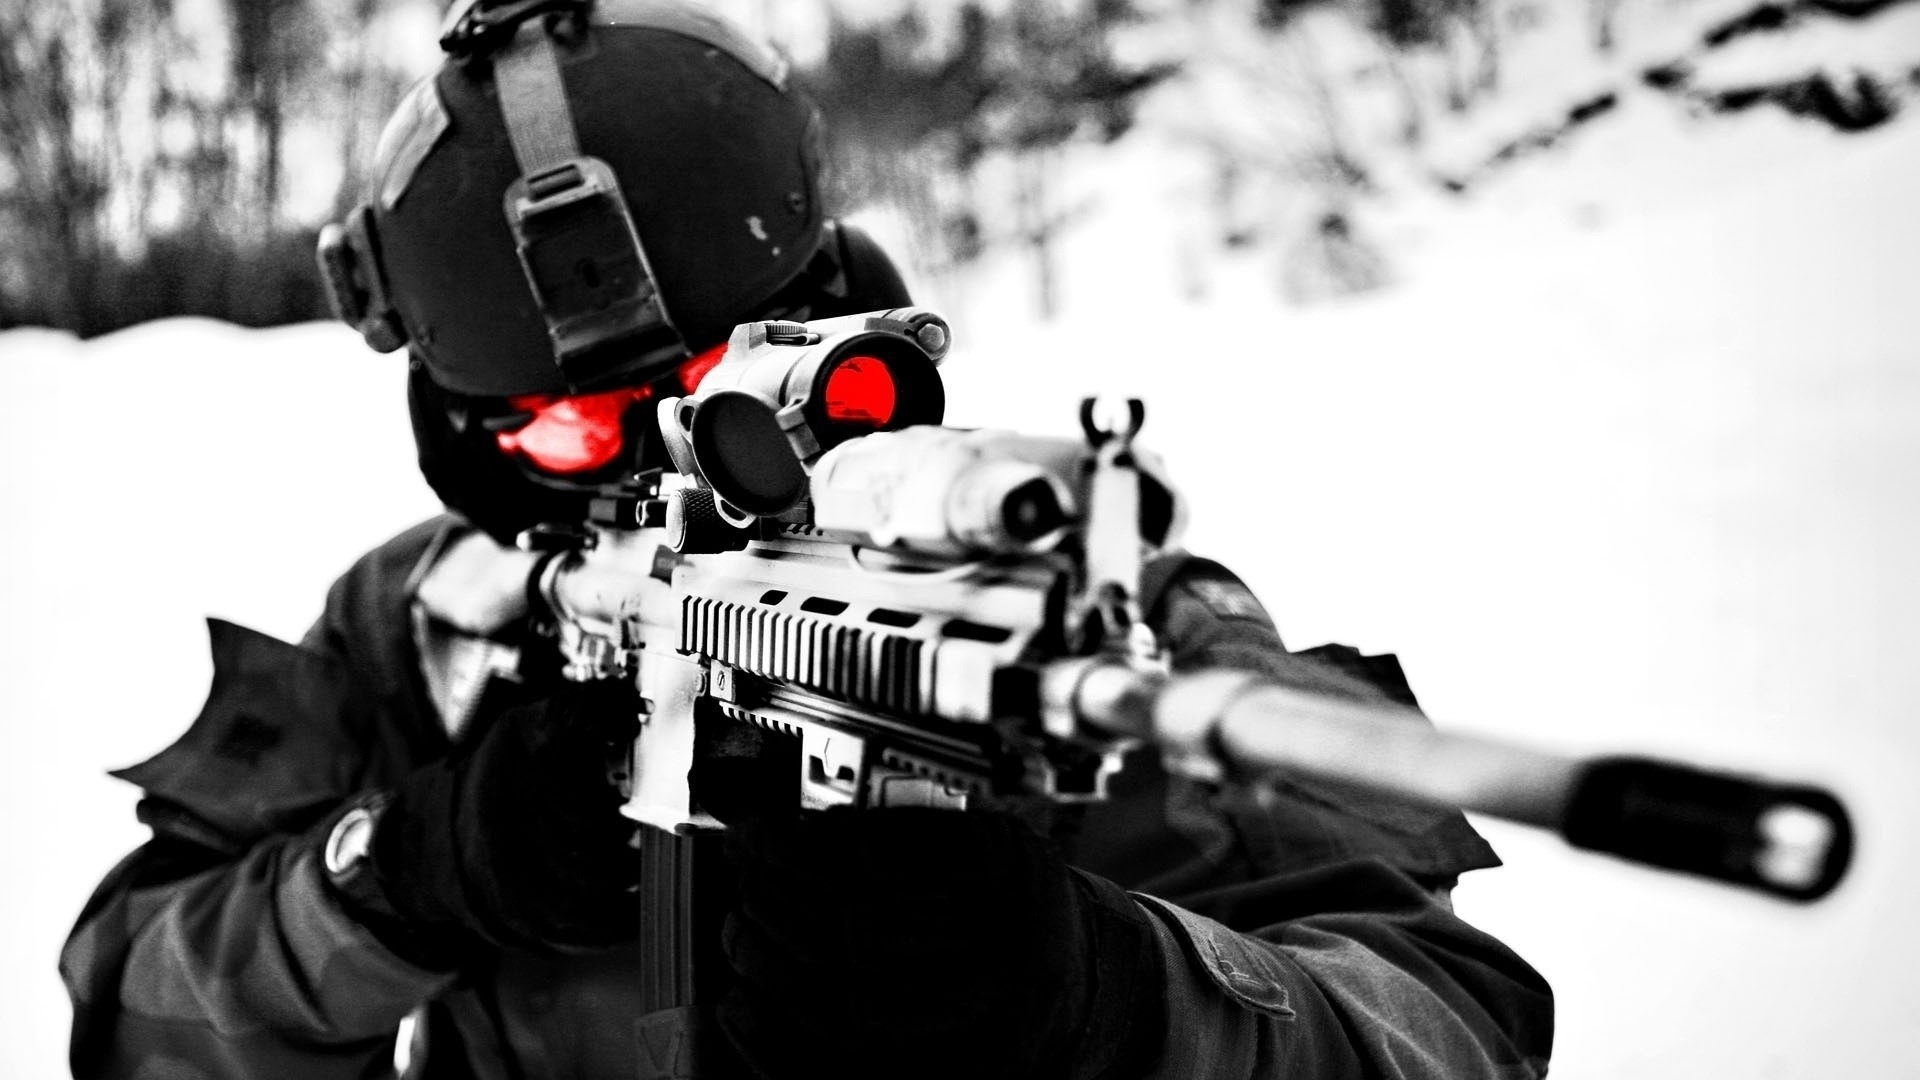 Sniper Rifle Snipers Artwork Wallpapers Hd Desktop And: Navy Seal Sniper Wallpaper ·① WallpaperTag